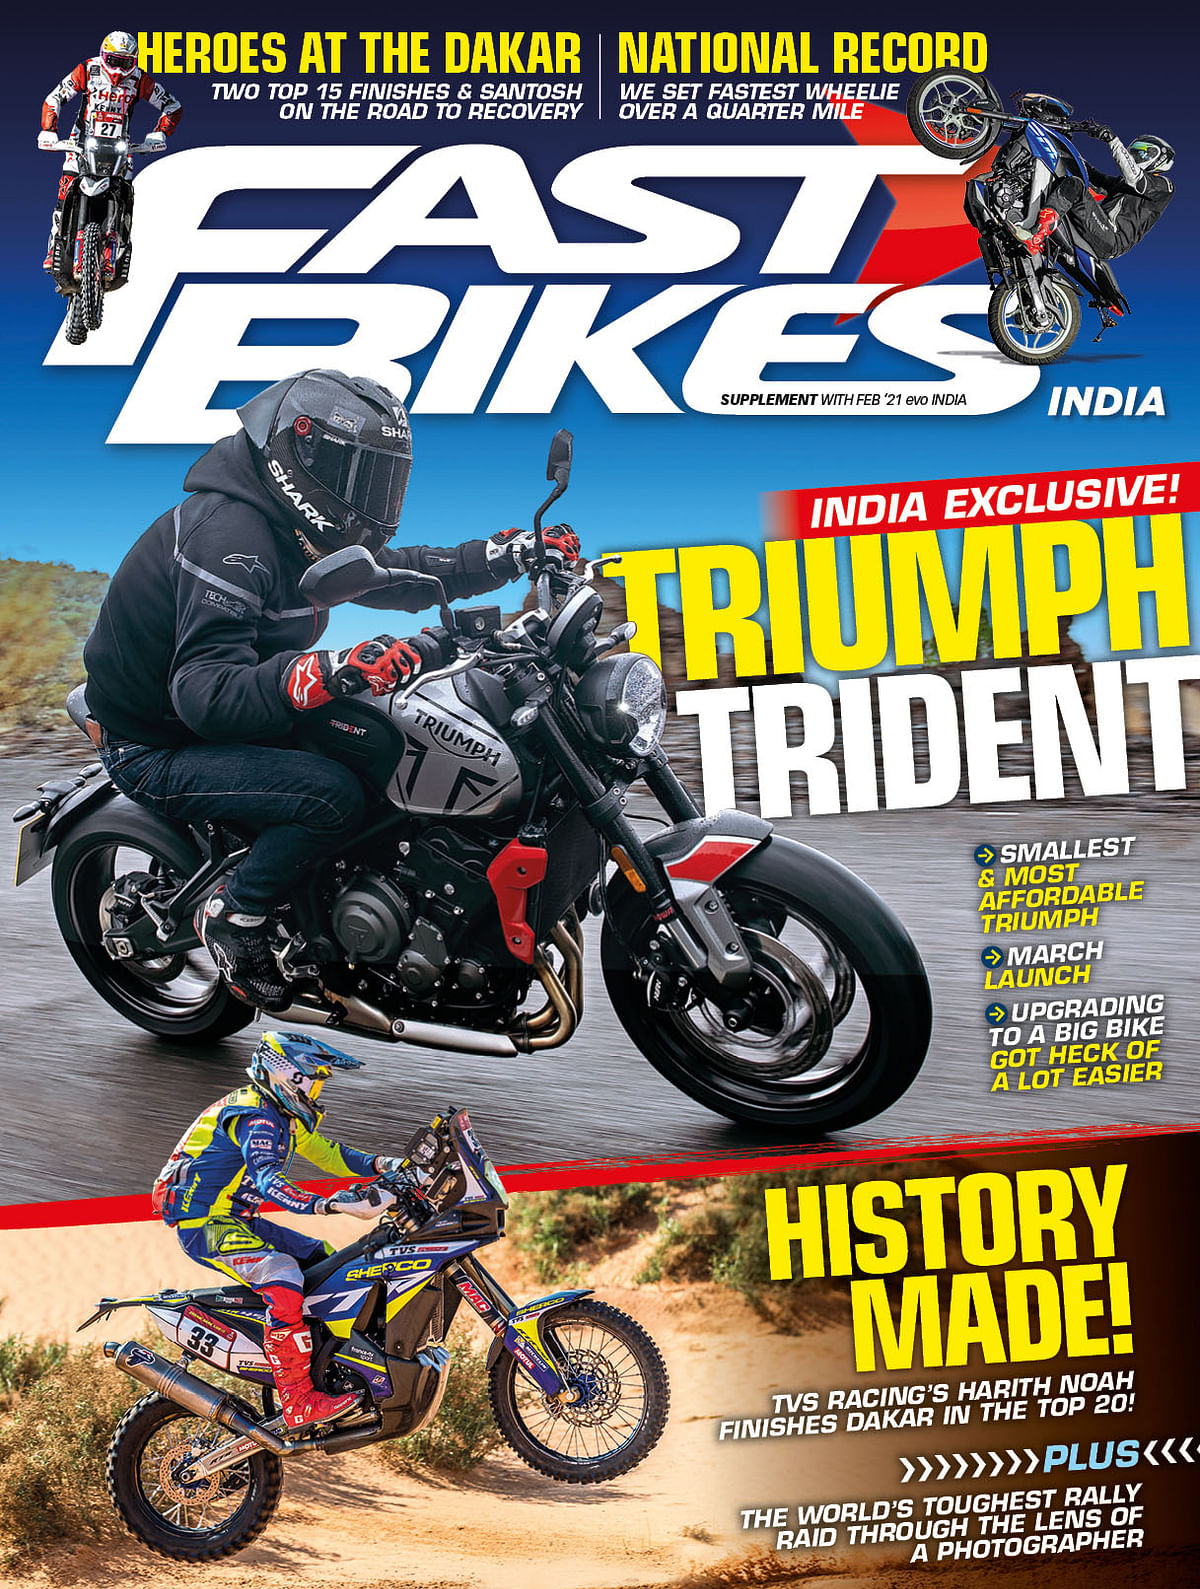 In the Fast Bikes India supplement, apart from the Trident, we bring you Harith Noah's Dakar journey, India's fastest quarter-mile wheelie attempt and more.